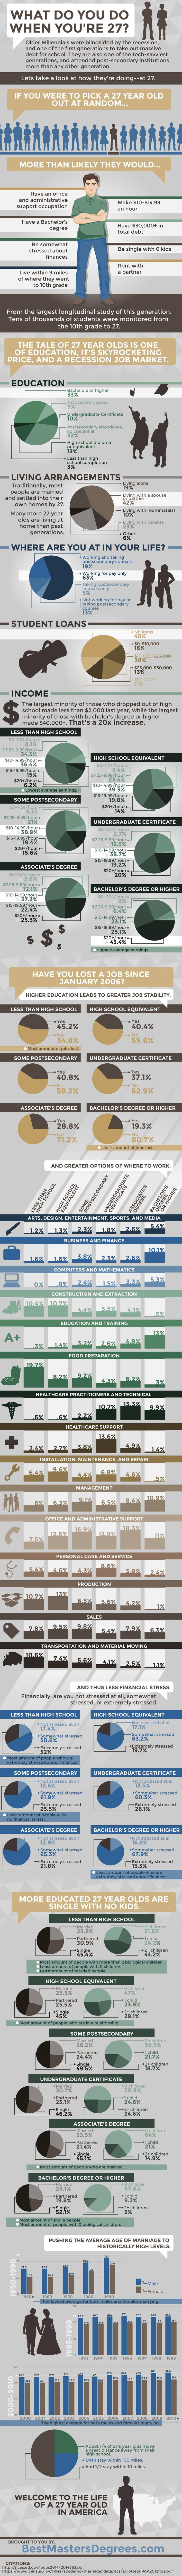 The Life of a 27 year old in America – Millennials Infographic | e-Learning Infographicse-Learning Infographics